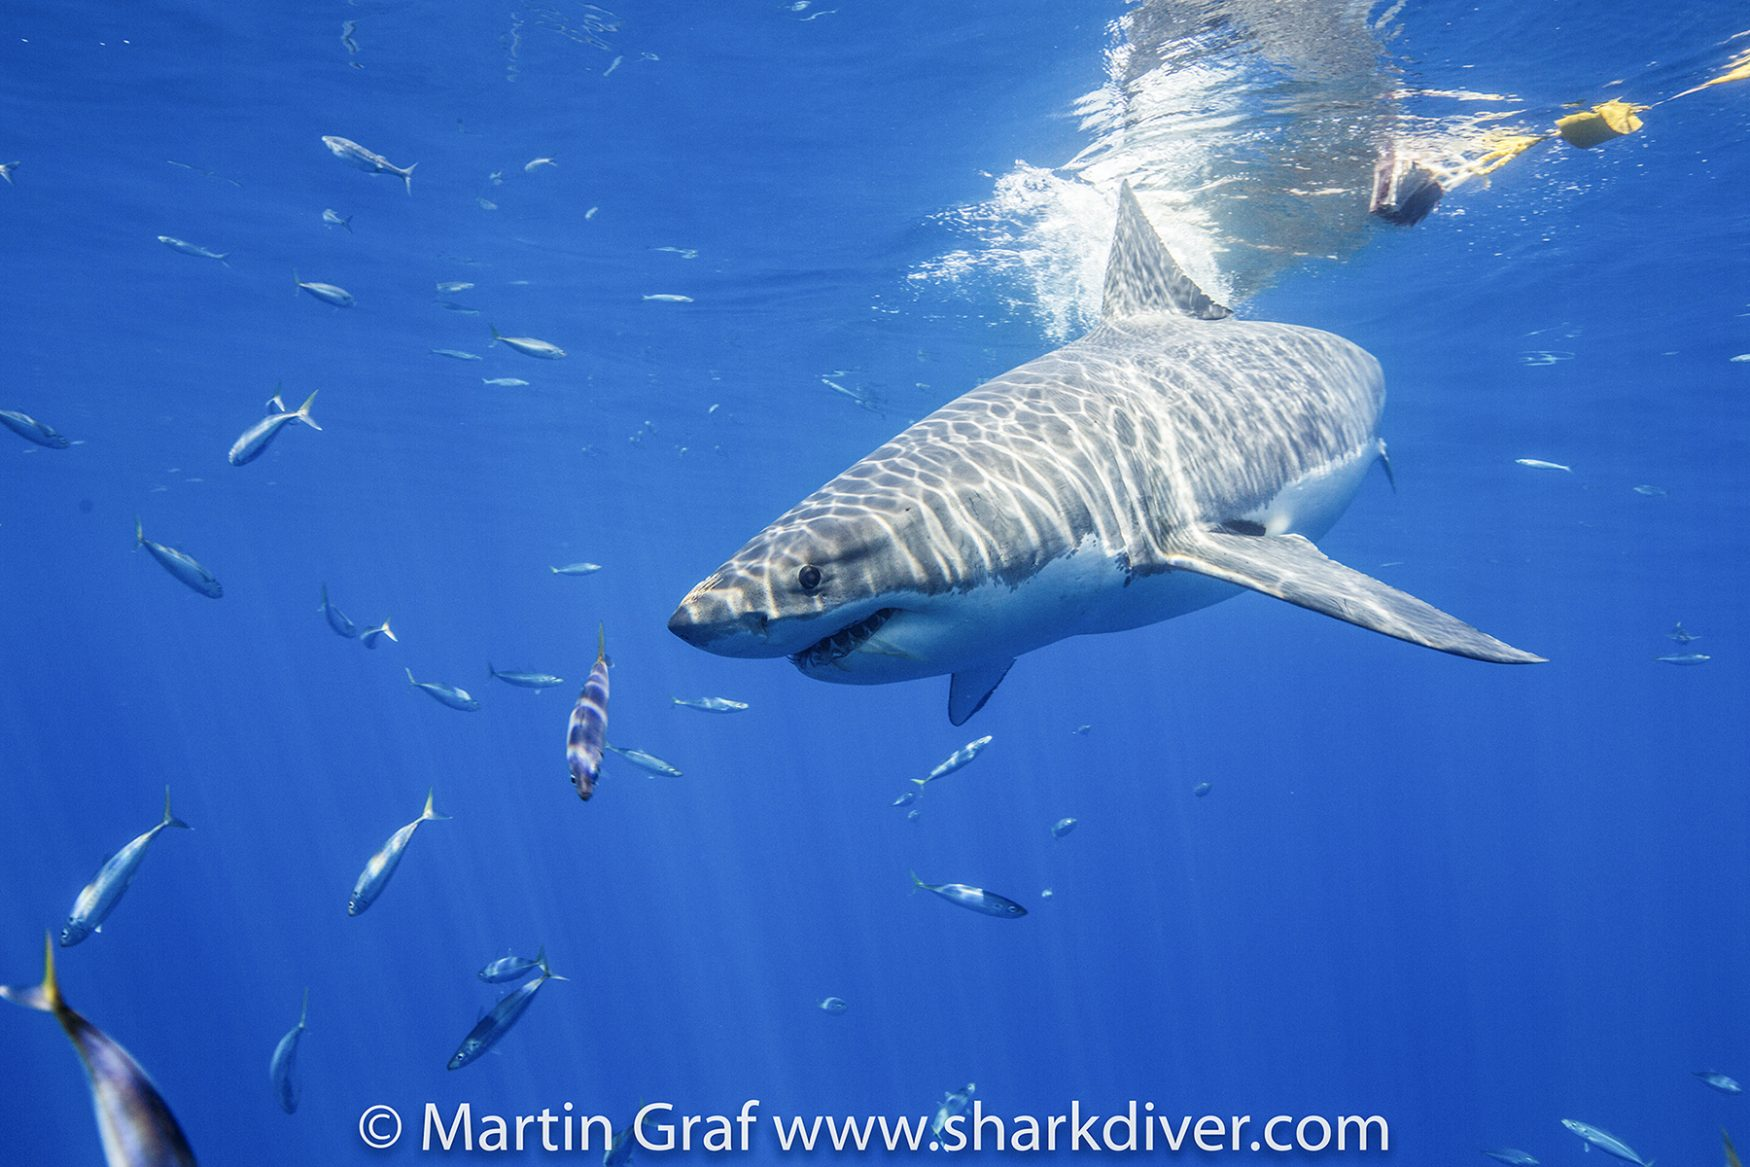 A great white misses the tuna at Guadalupe, Photo by Martin Graf